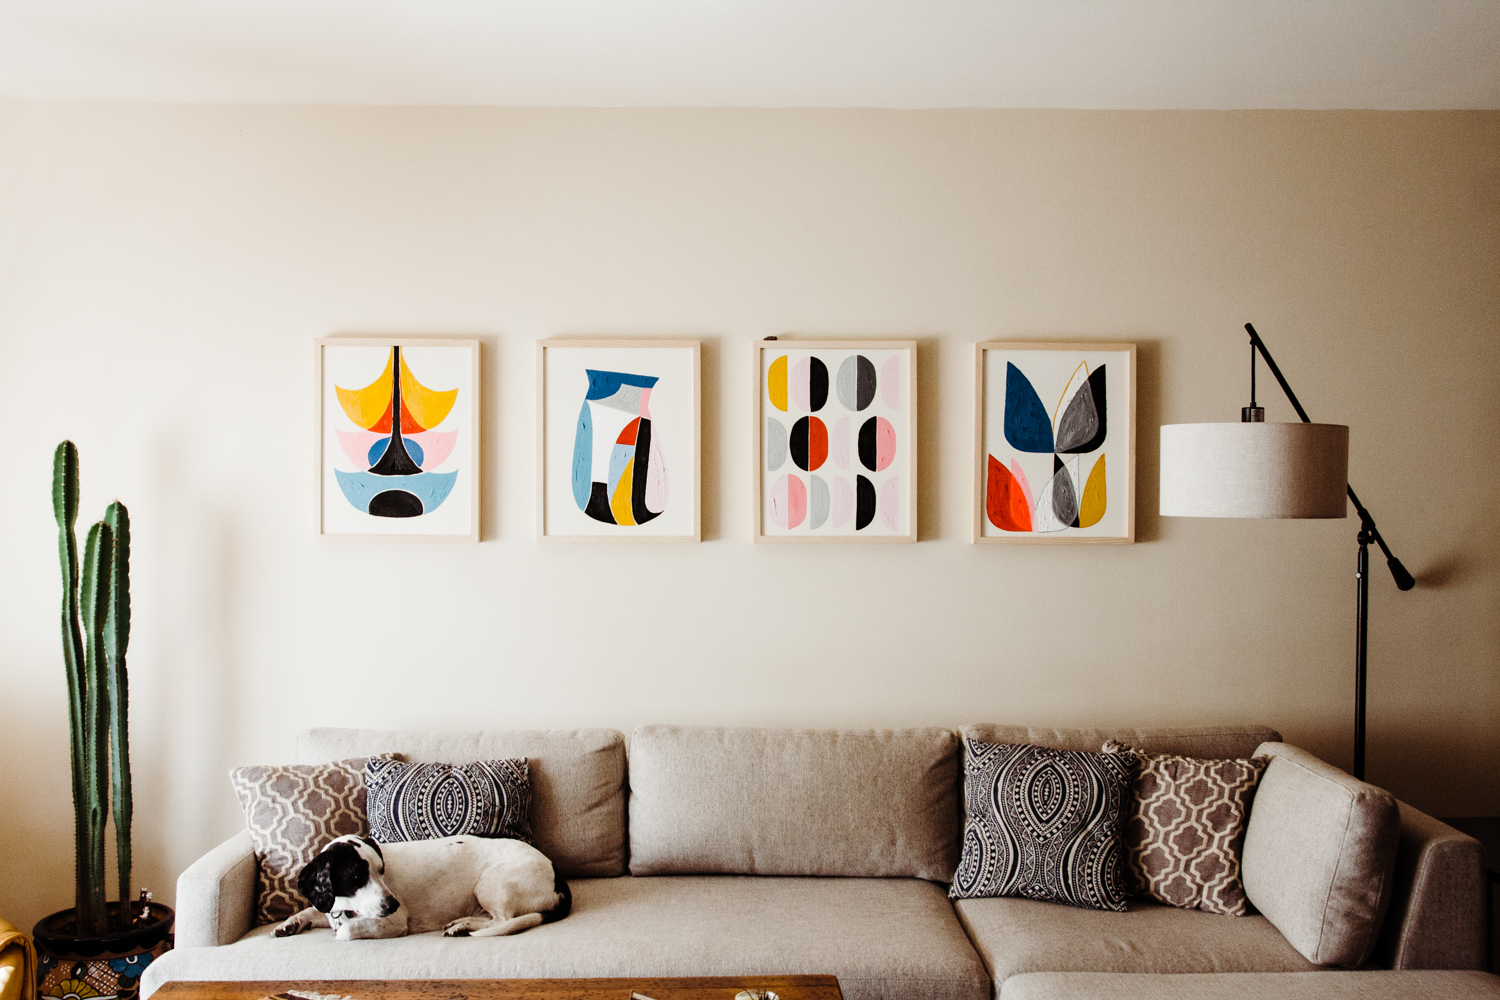 mid-century-modern-meets-colorful-whimsy.jpg